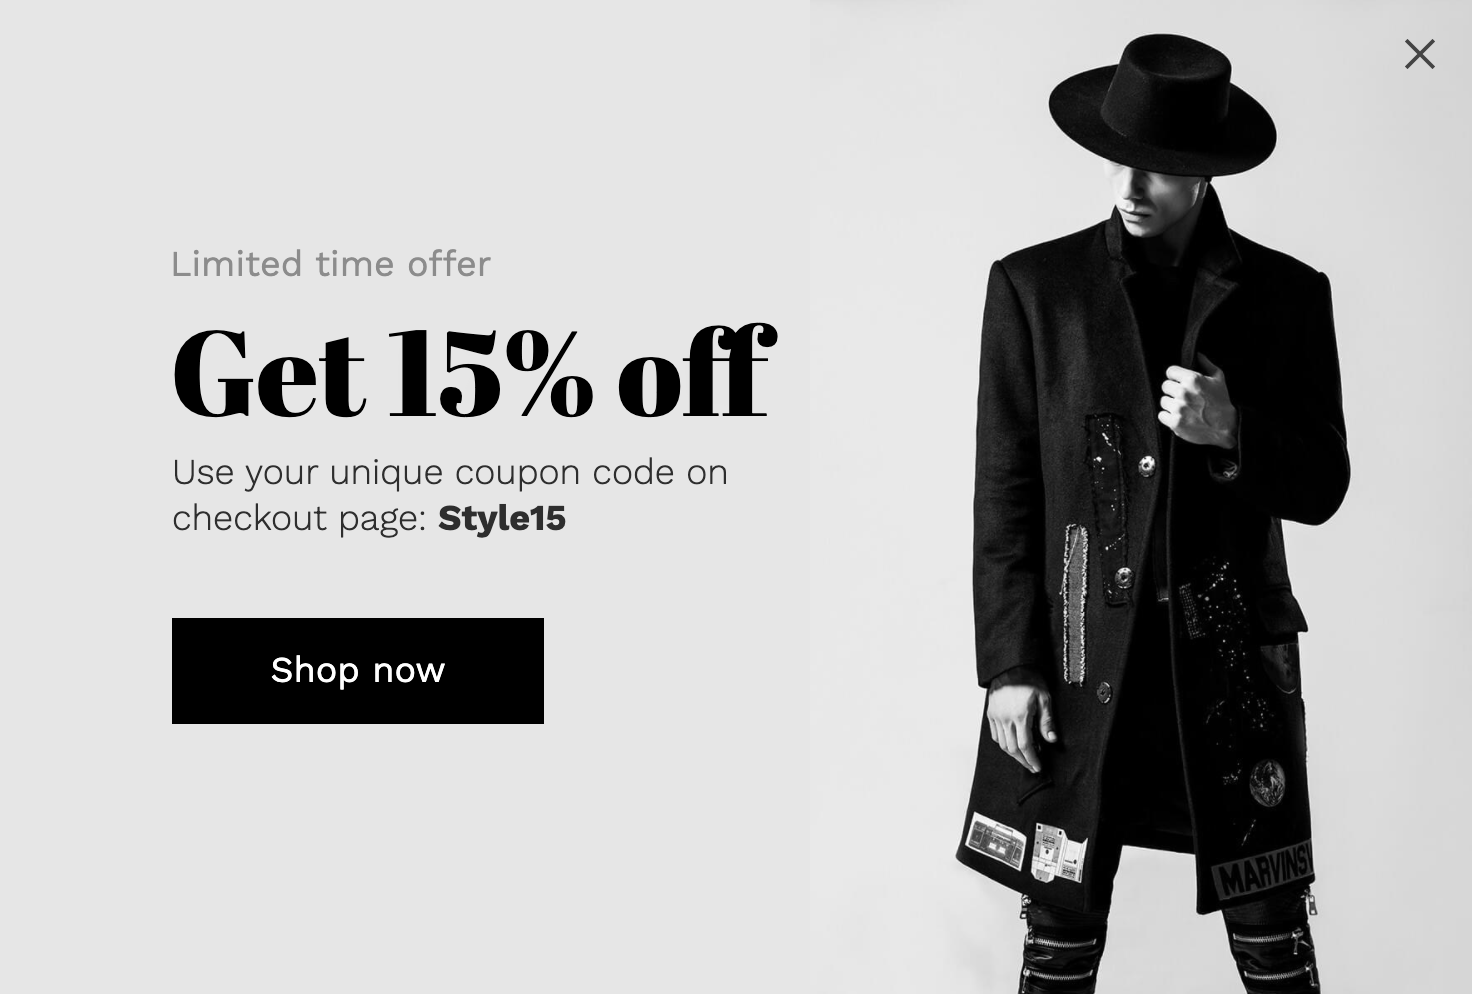 Limited-time offer popup with a suave feel